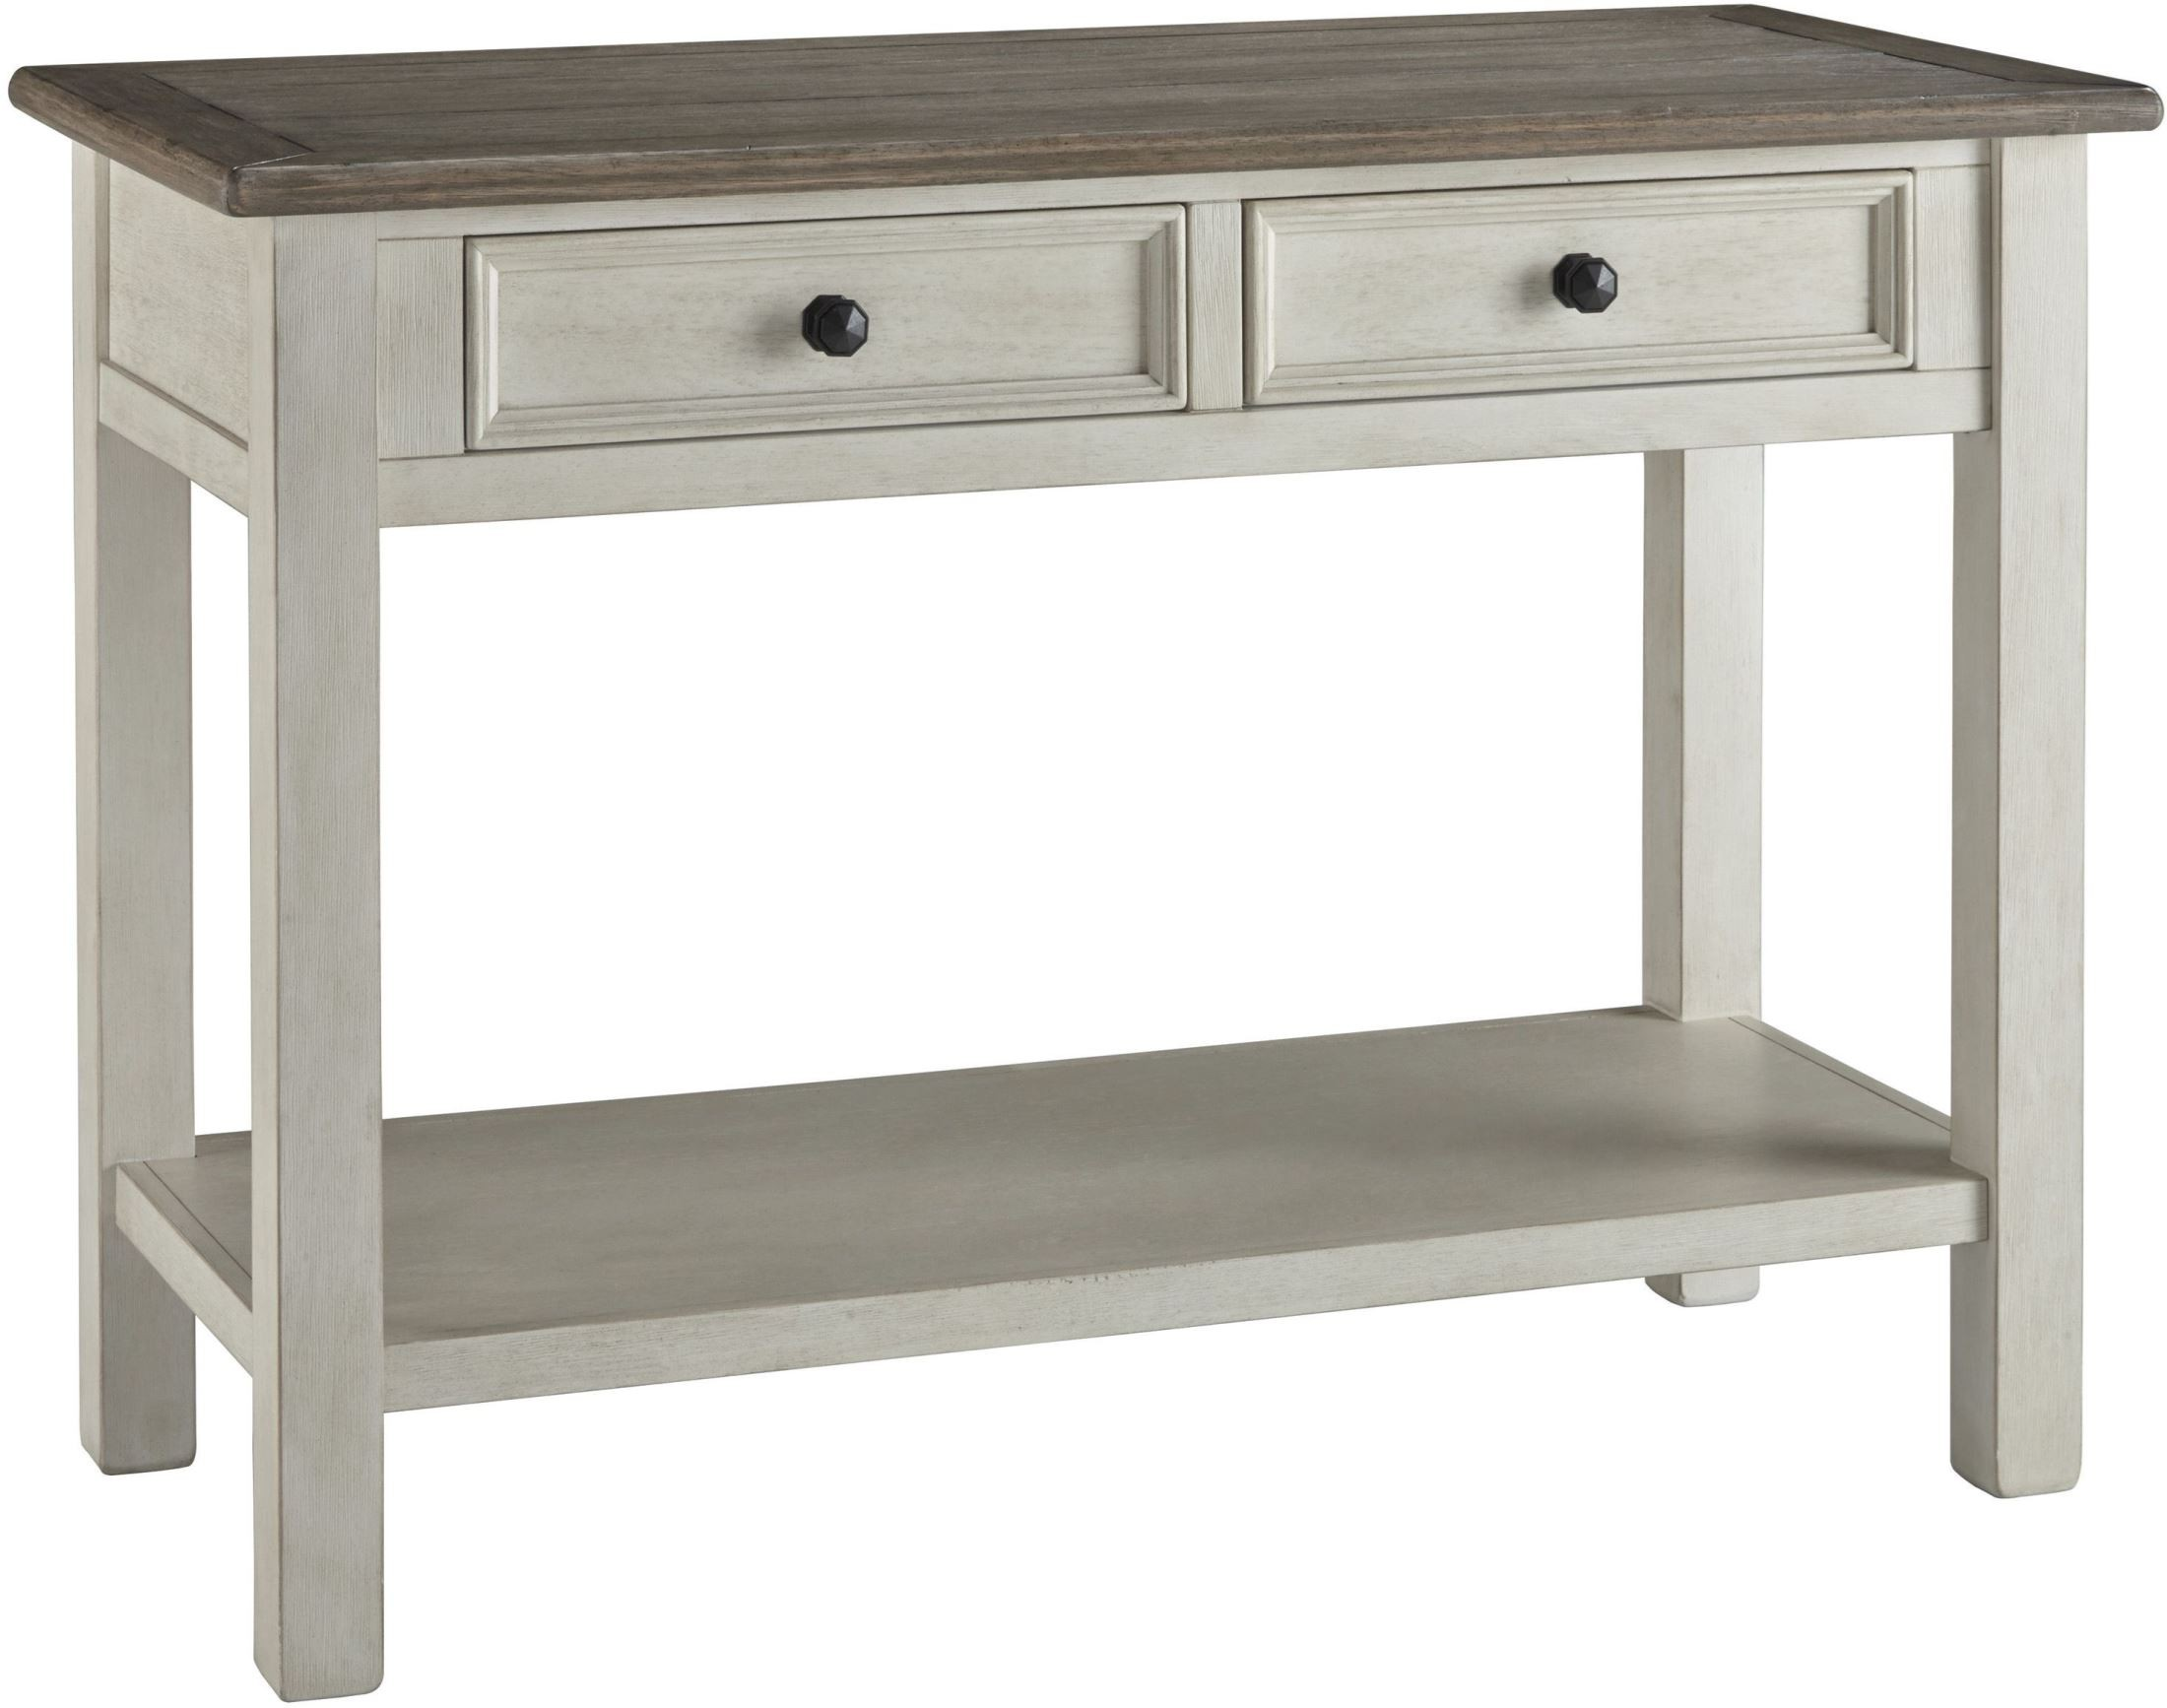 Bolanburg weathered gray sofa table from ashley coleman for Sofa table grey